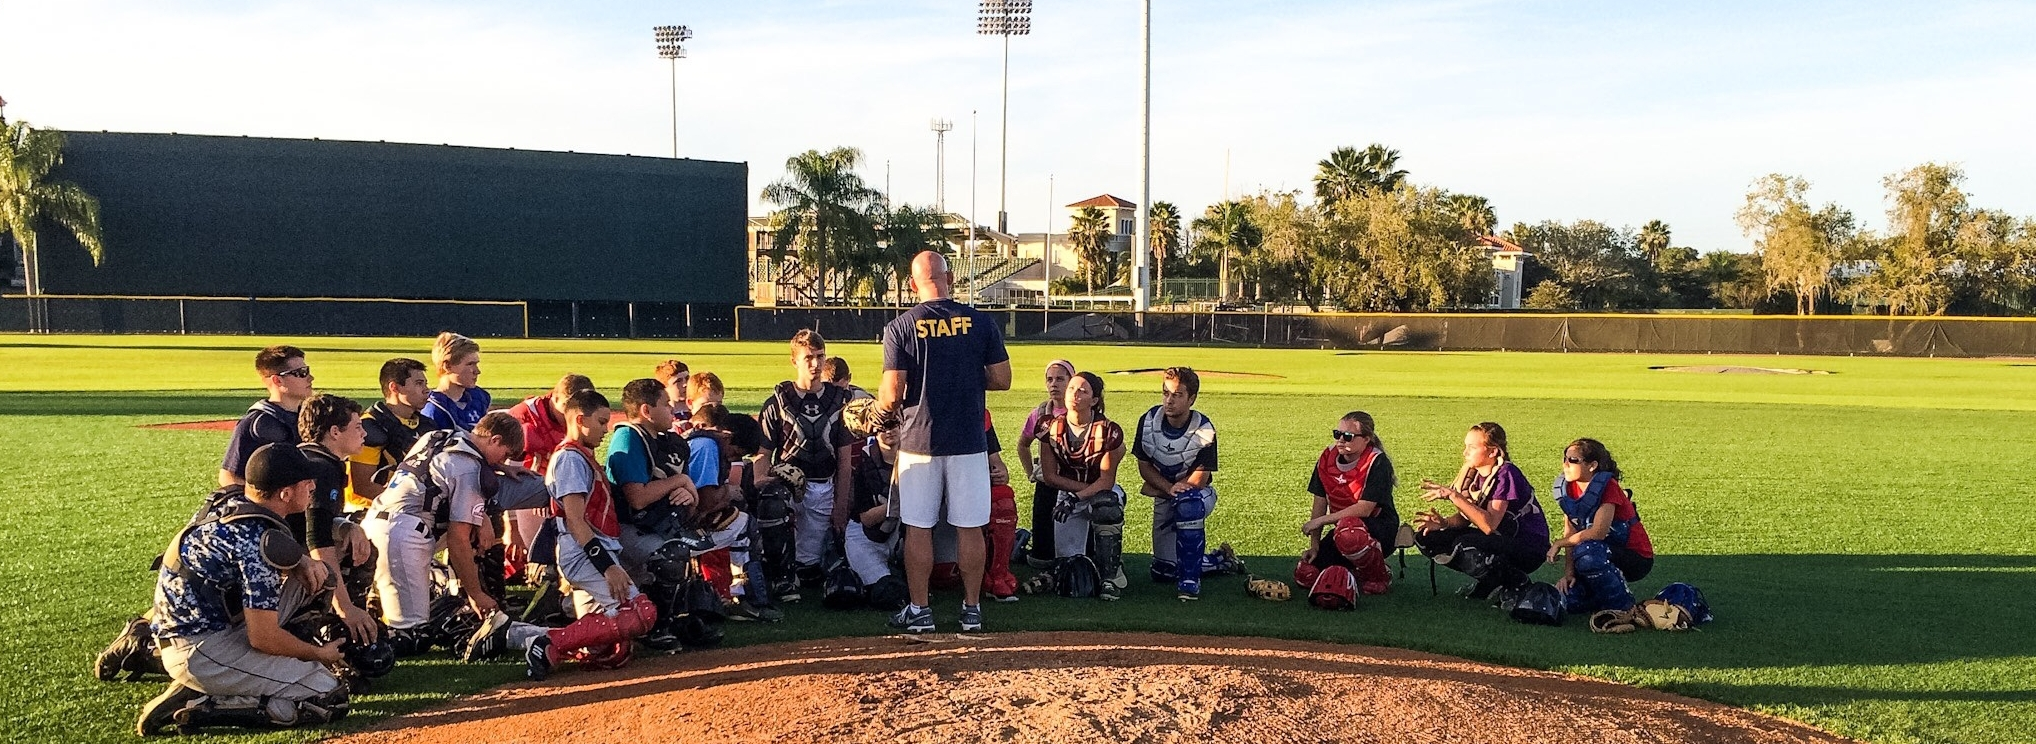 - From the months of October through March, TCC travels the country running two and three-day camps for catchers ages 8-18. TCC has run programs in 23 States and Puerto Rico!